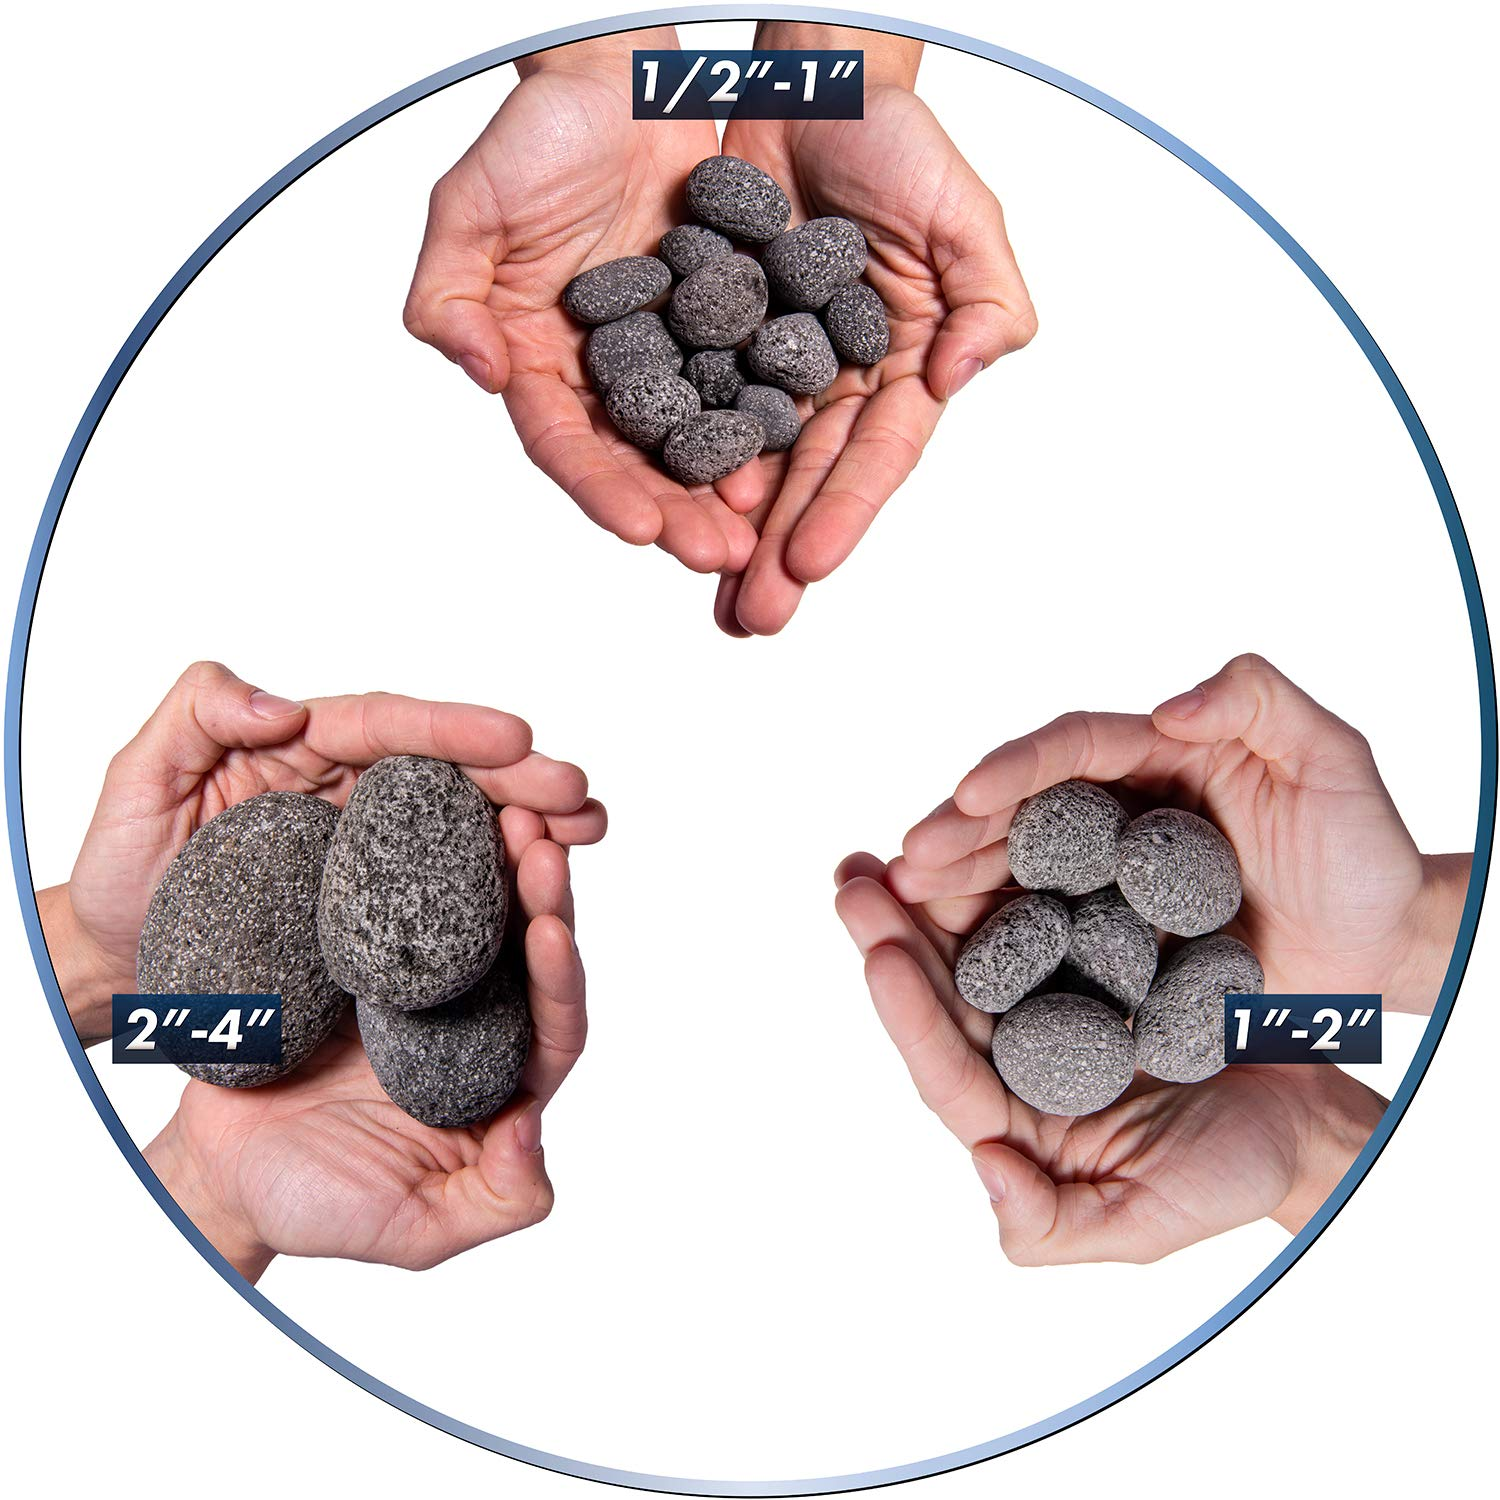 Hand-Picked Stones 10 Pounds 2 Inch Fire Rock Black 1 Inch Natural Fireproof and Heatproof Round Pebbles for Indoor or Outdoor Gas Fire Pits and Fireplaces